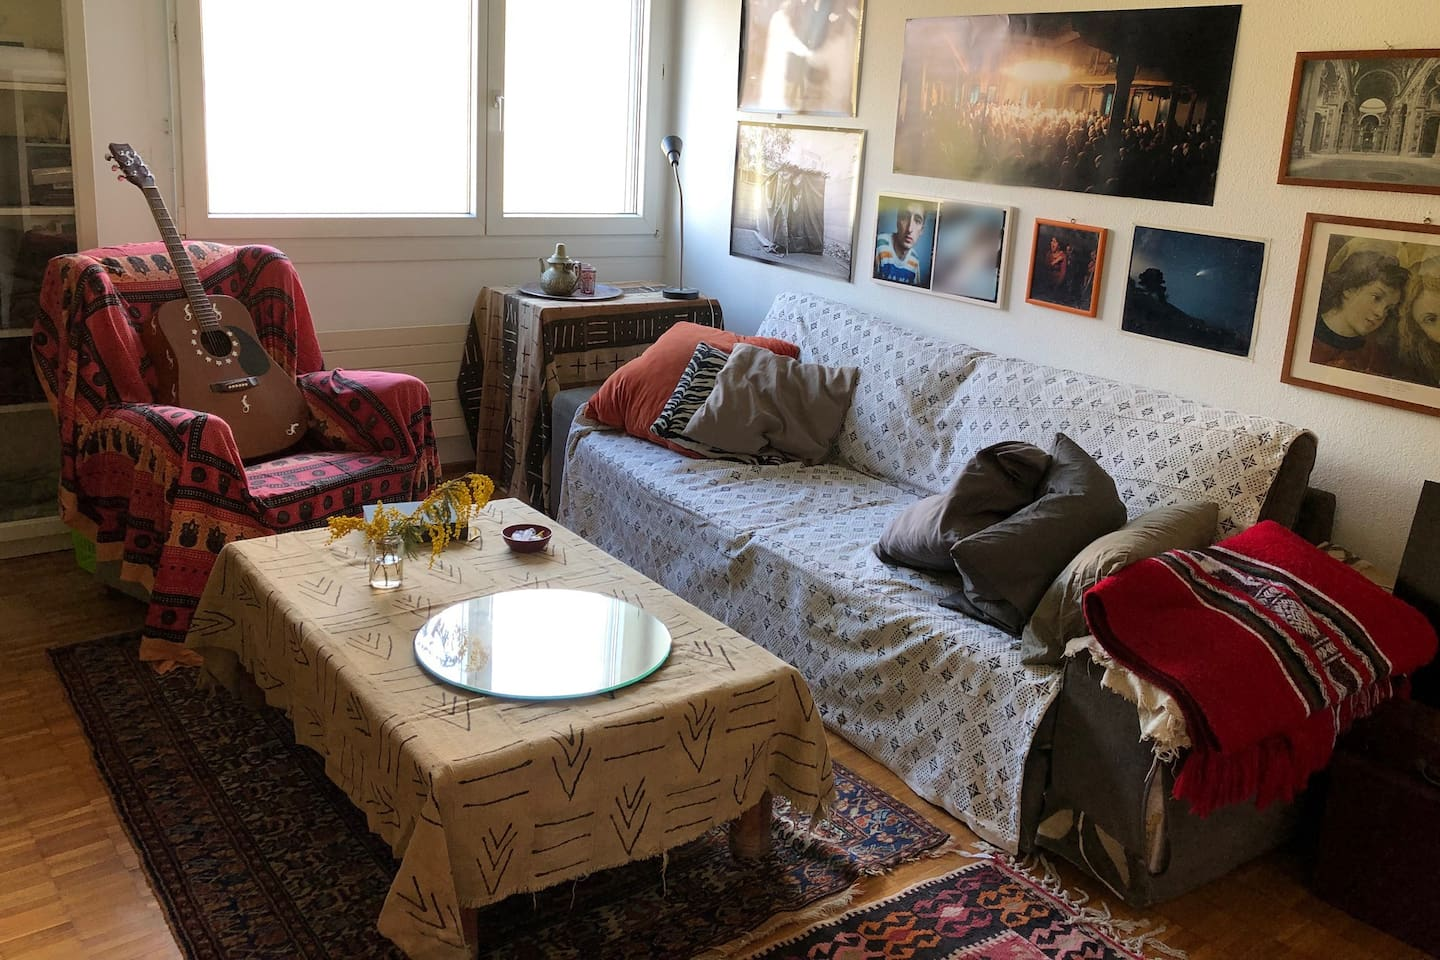 The cozy living-room is in fact a proper room with a lockable door, with plenty of art hanging on the walls. If you play guitar, you don't have to bring yours ;-) This big sofa opens into a comfy queen size bed or a comfy single bed.